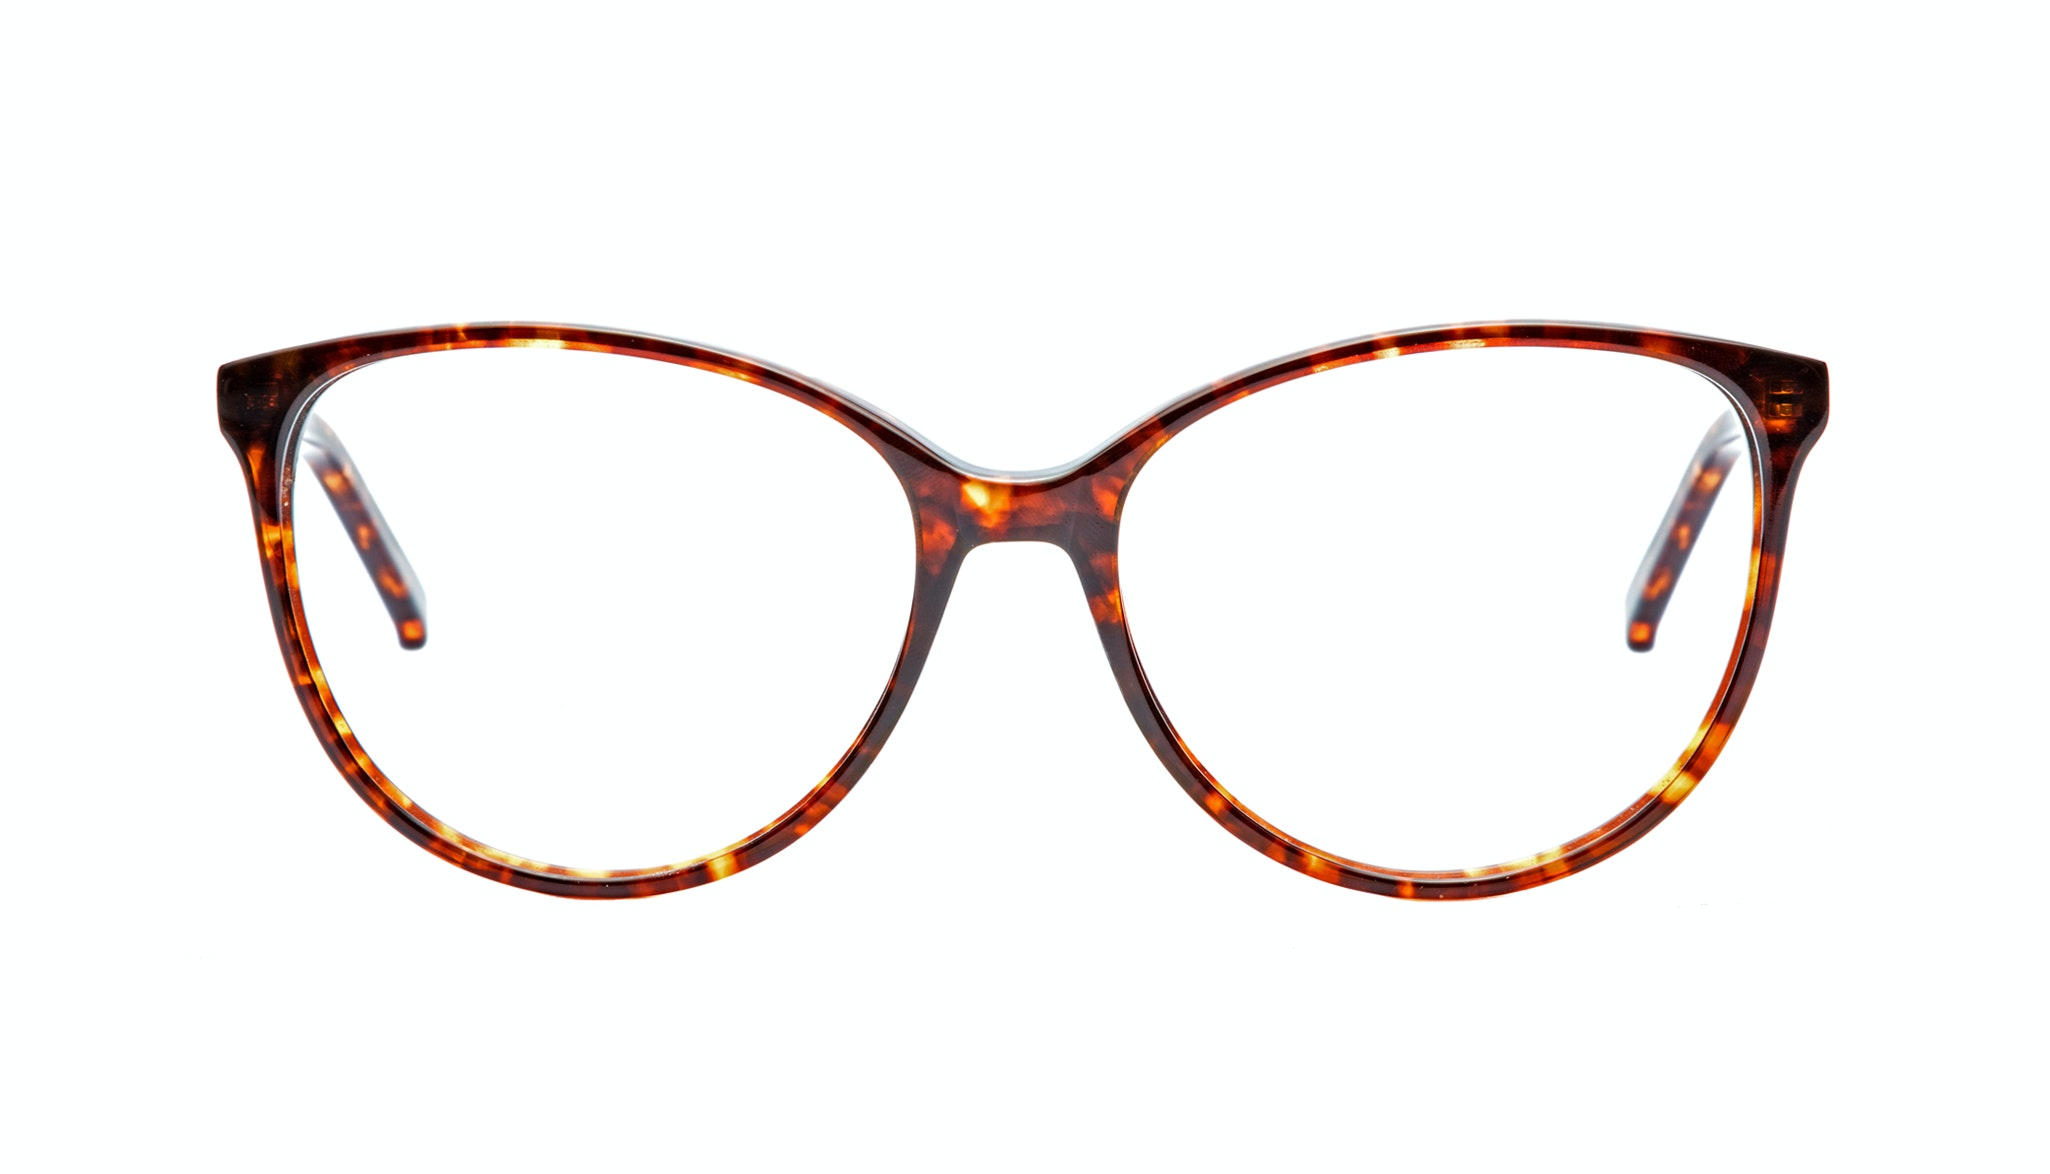 Affordable Fashion Glasses Cat Eye Round Eyeglasses Women Imagine Sepia Kiss Front